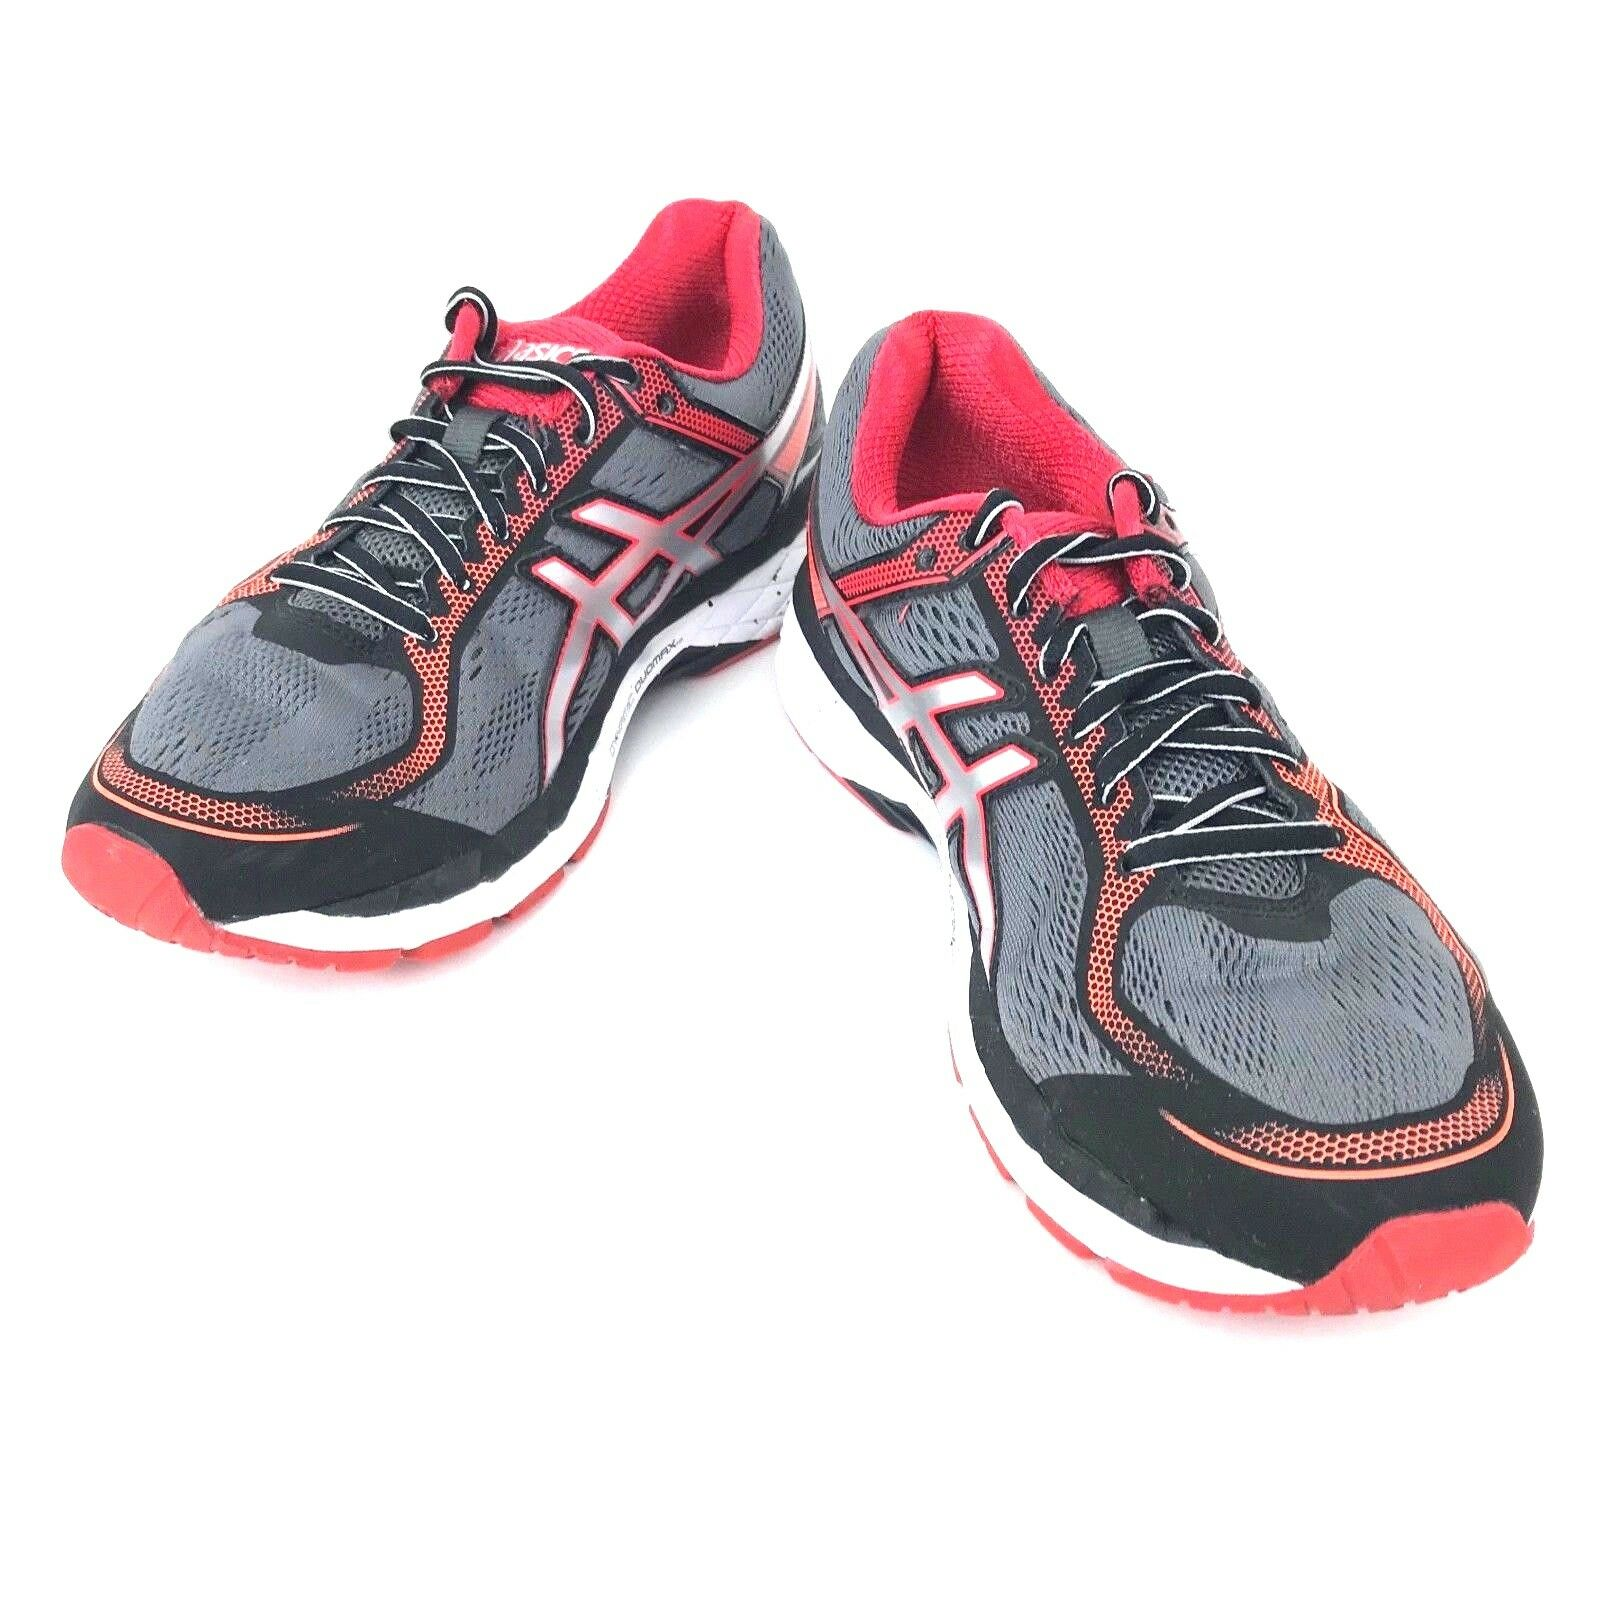 Asics GEL Surveyor 5 Running Sneakers shoes 8 Silver Red Red Red Black  T6B4N 93162e